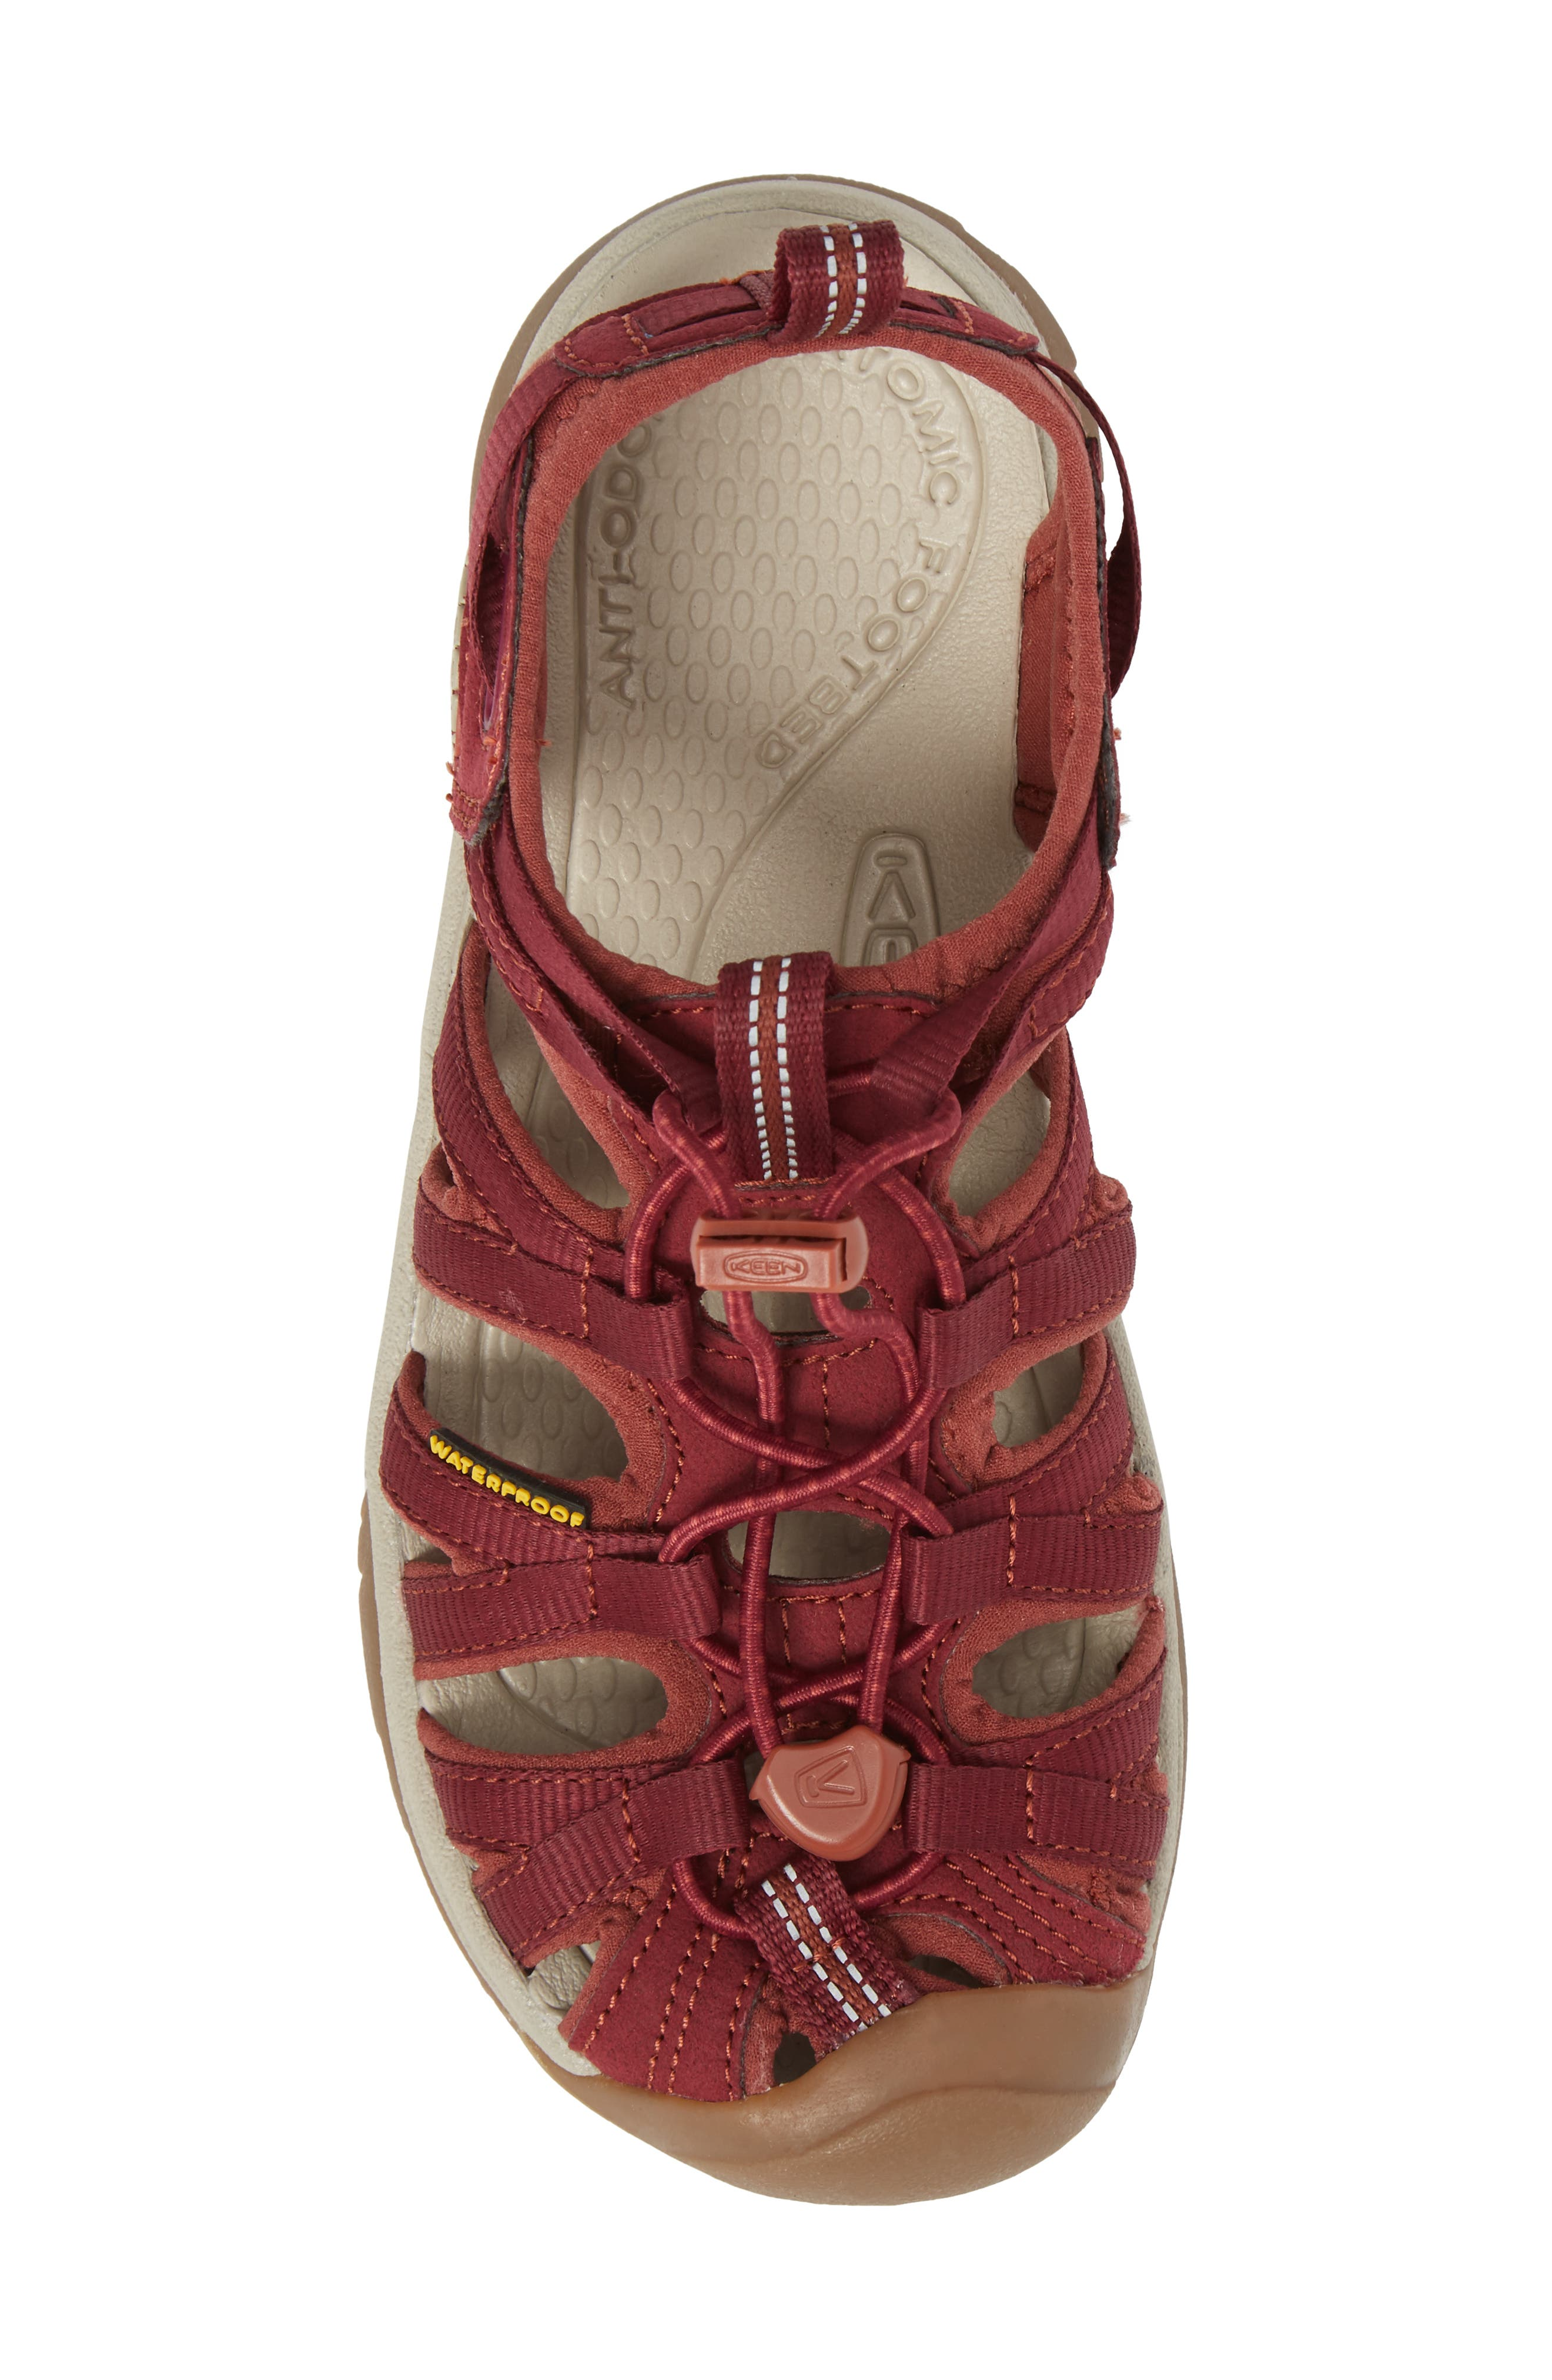 'Whisper' Water Friendly Sport Sandal,                             Alternate thumbnail 5, color,                             Rhododendron/ Marsala